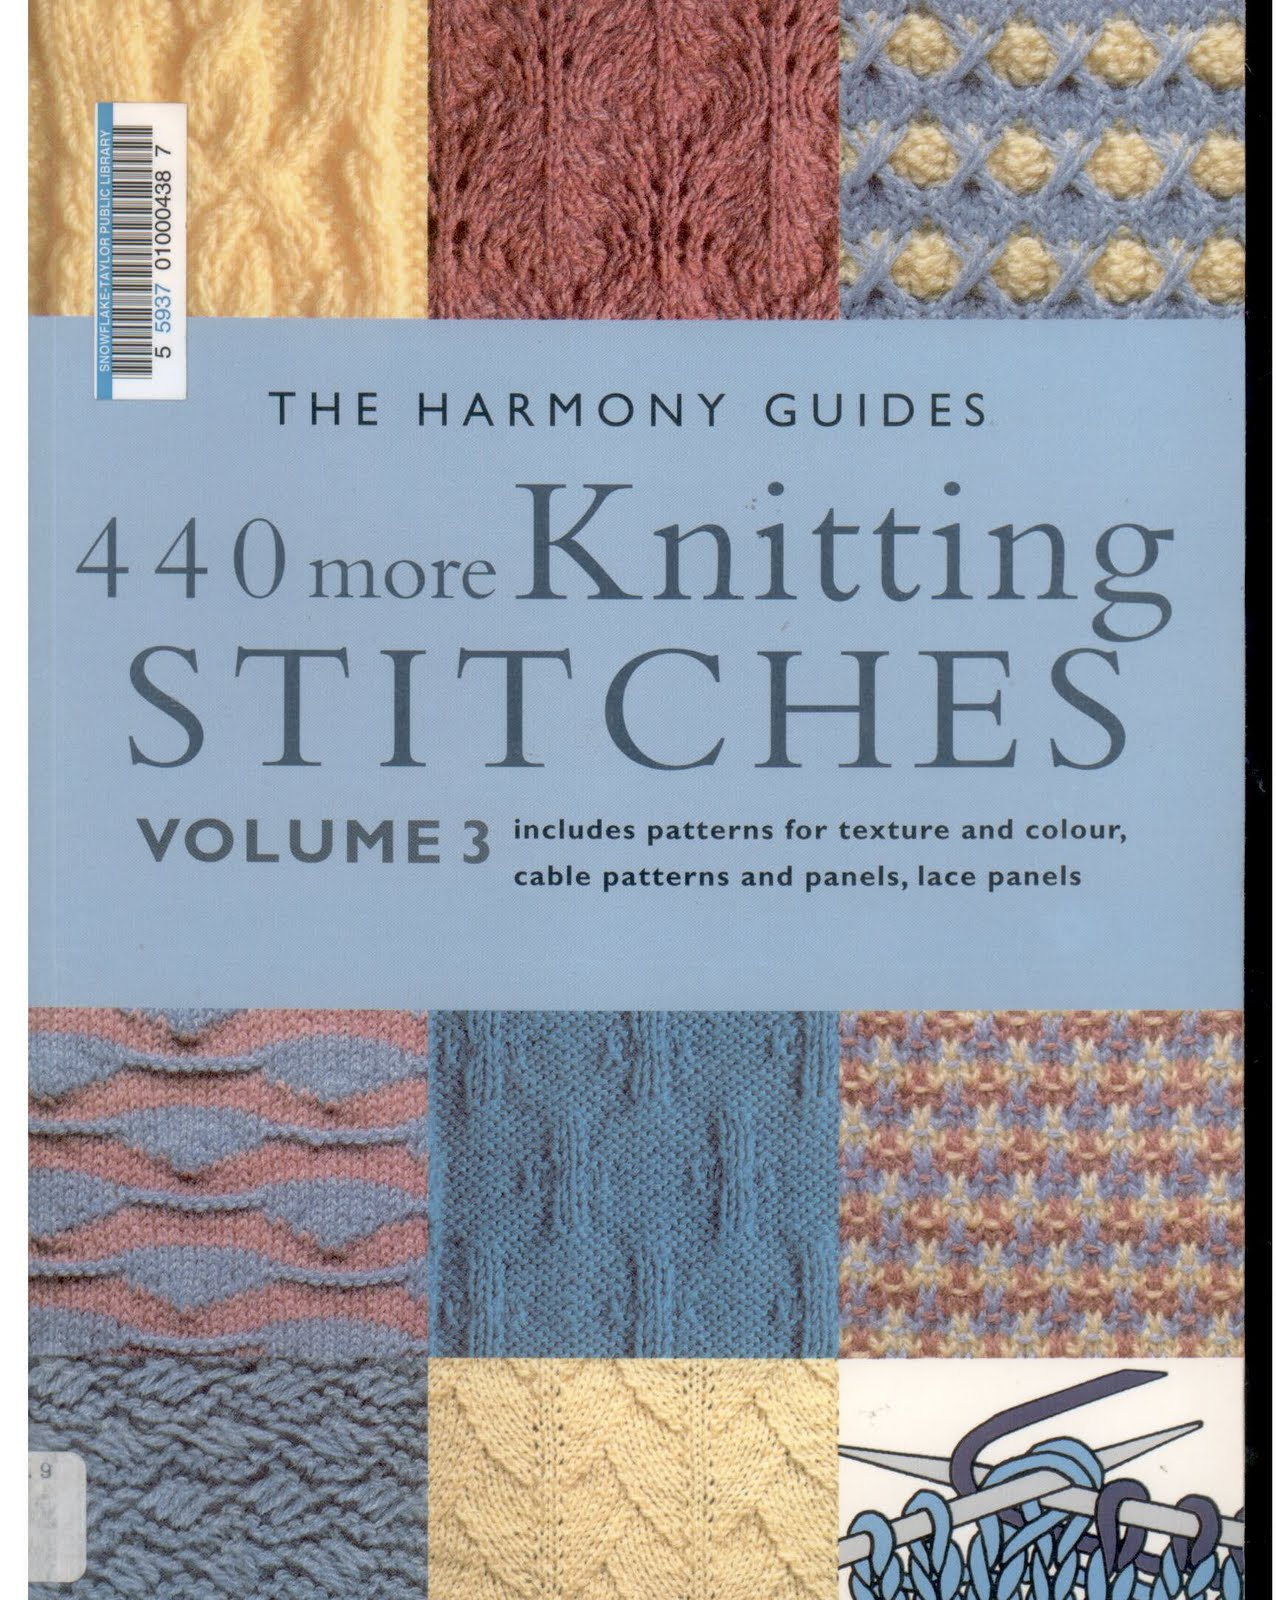 Knitting Patterns Free: Knitting instructions For Beginners - Knitting ...